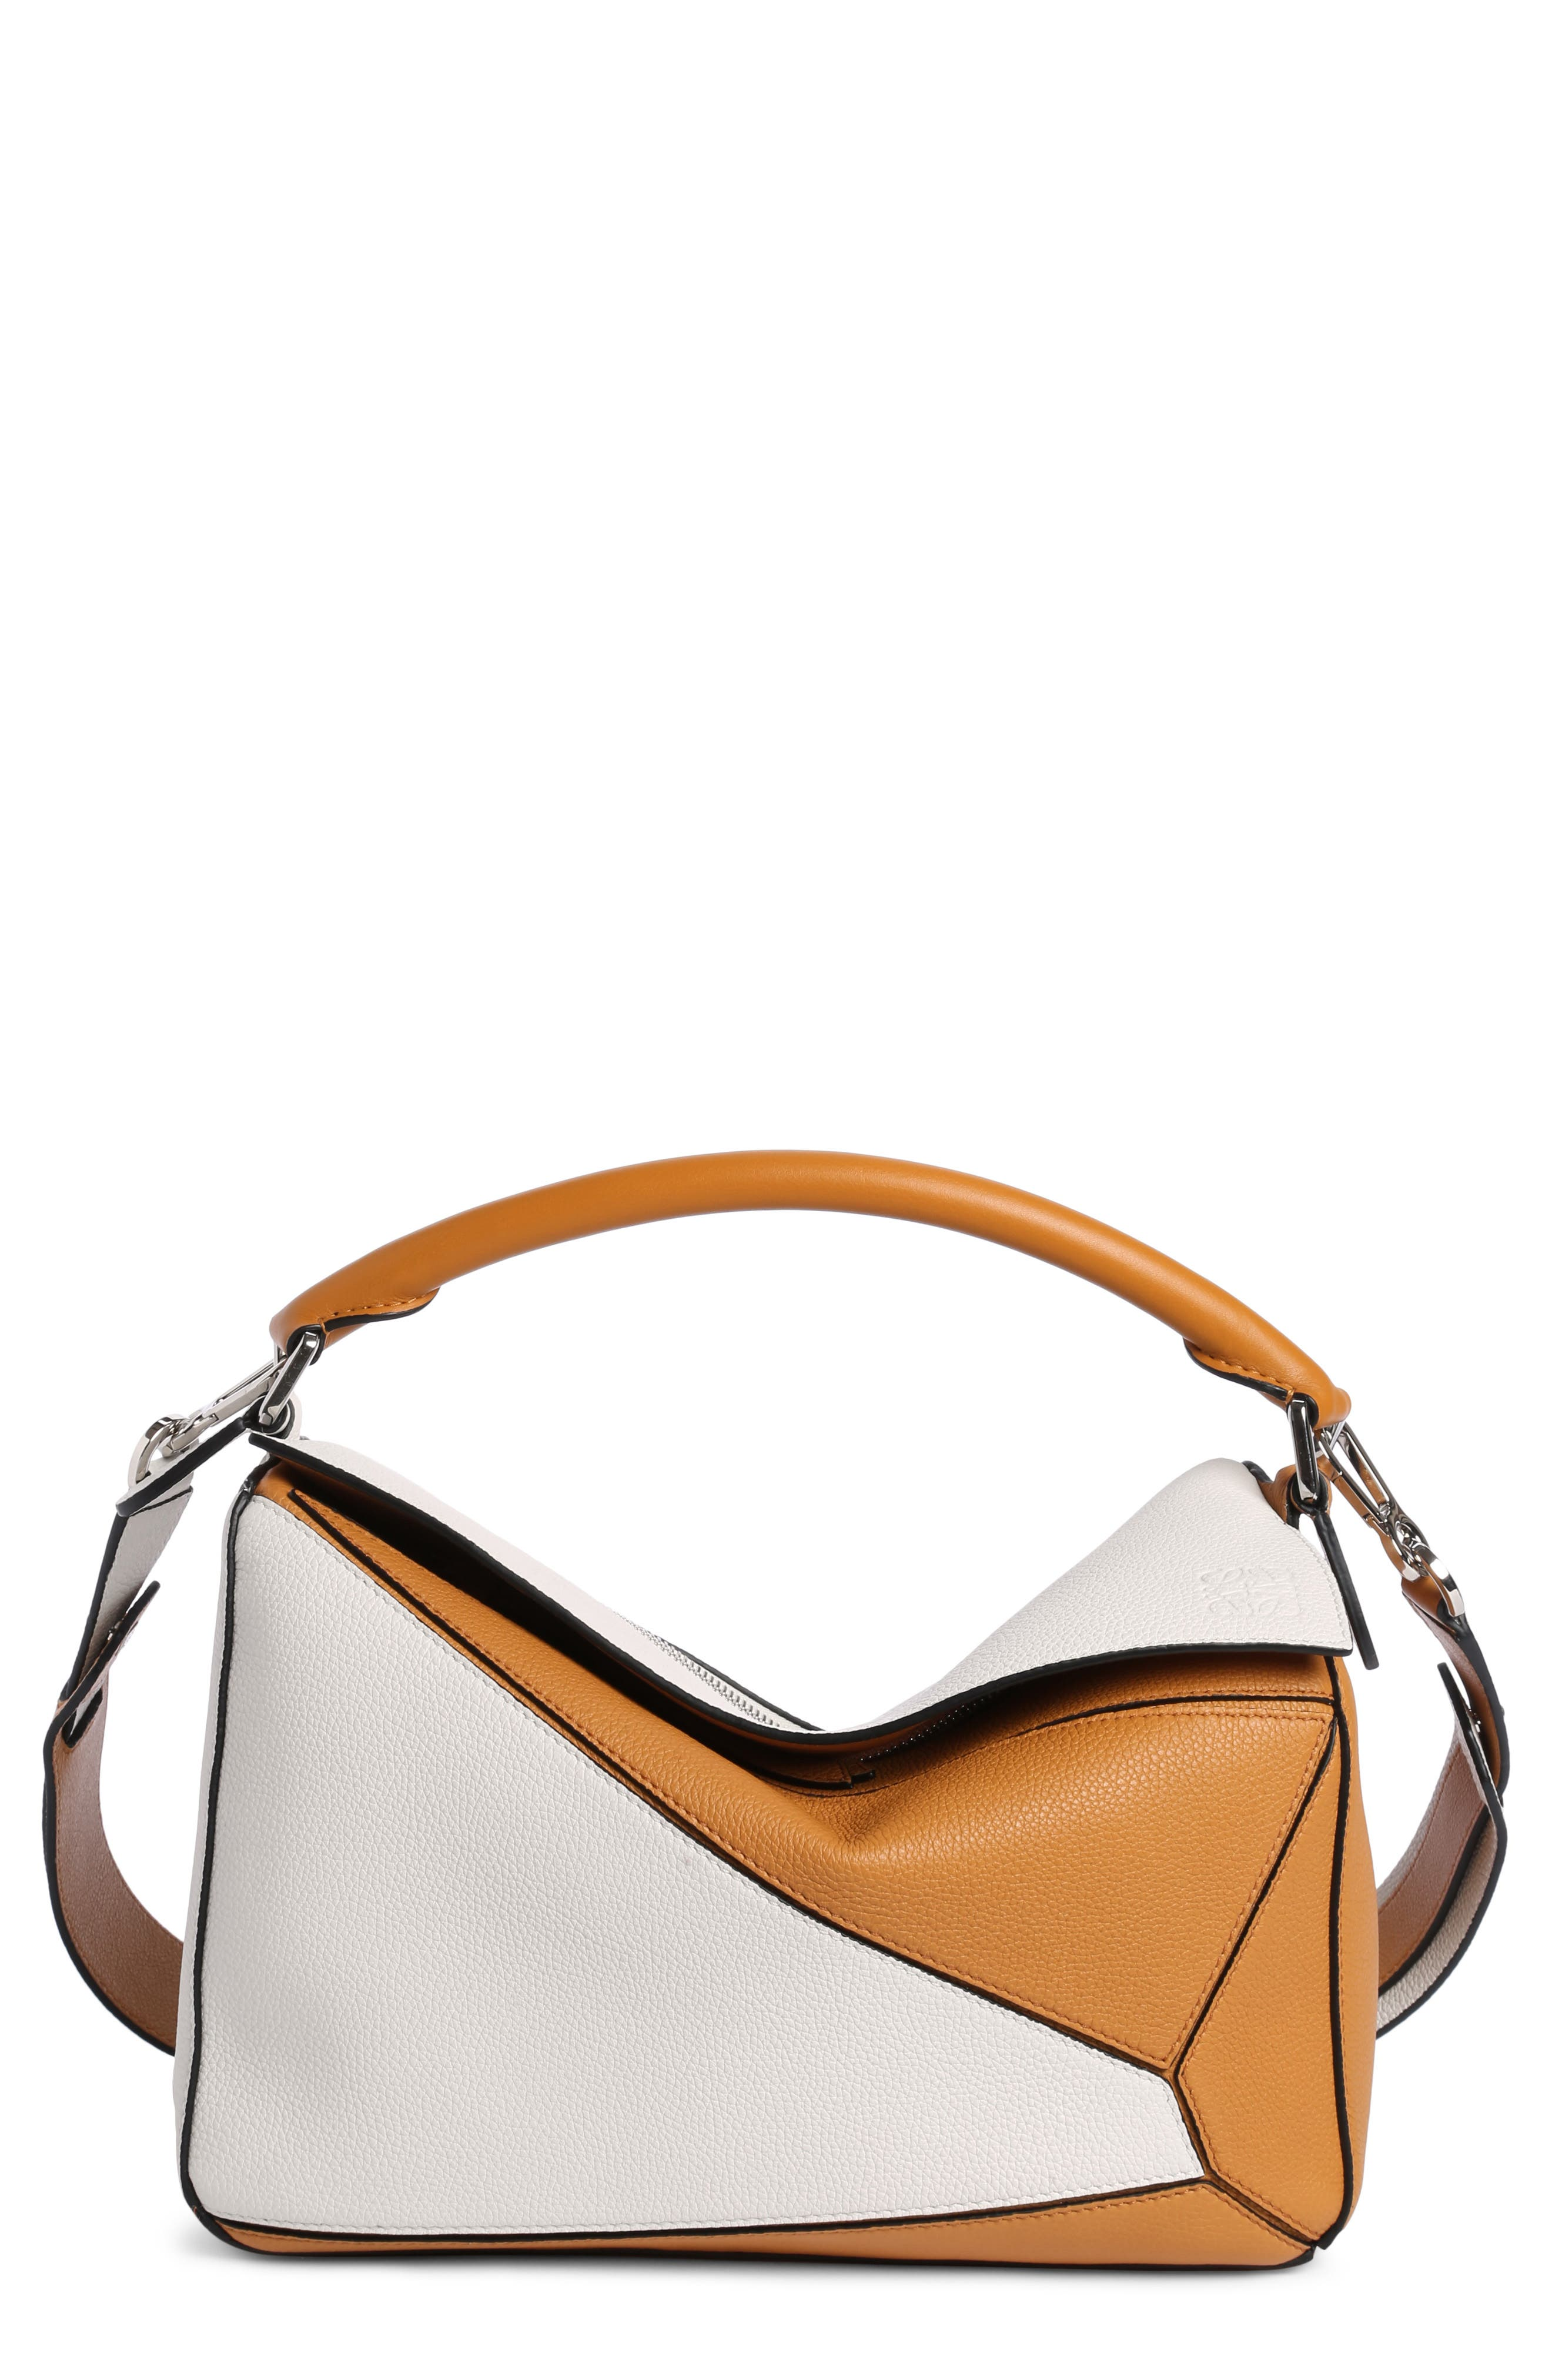 Puzzle Colorblock Calfskin Leather Bag,                             Main thumbnail 1, color,                             Soft White/ Amber